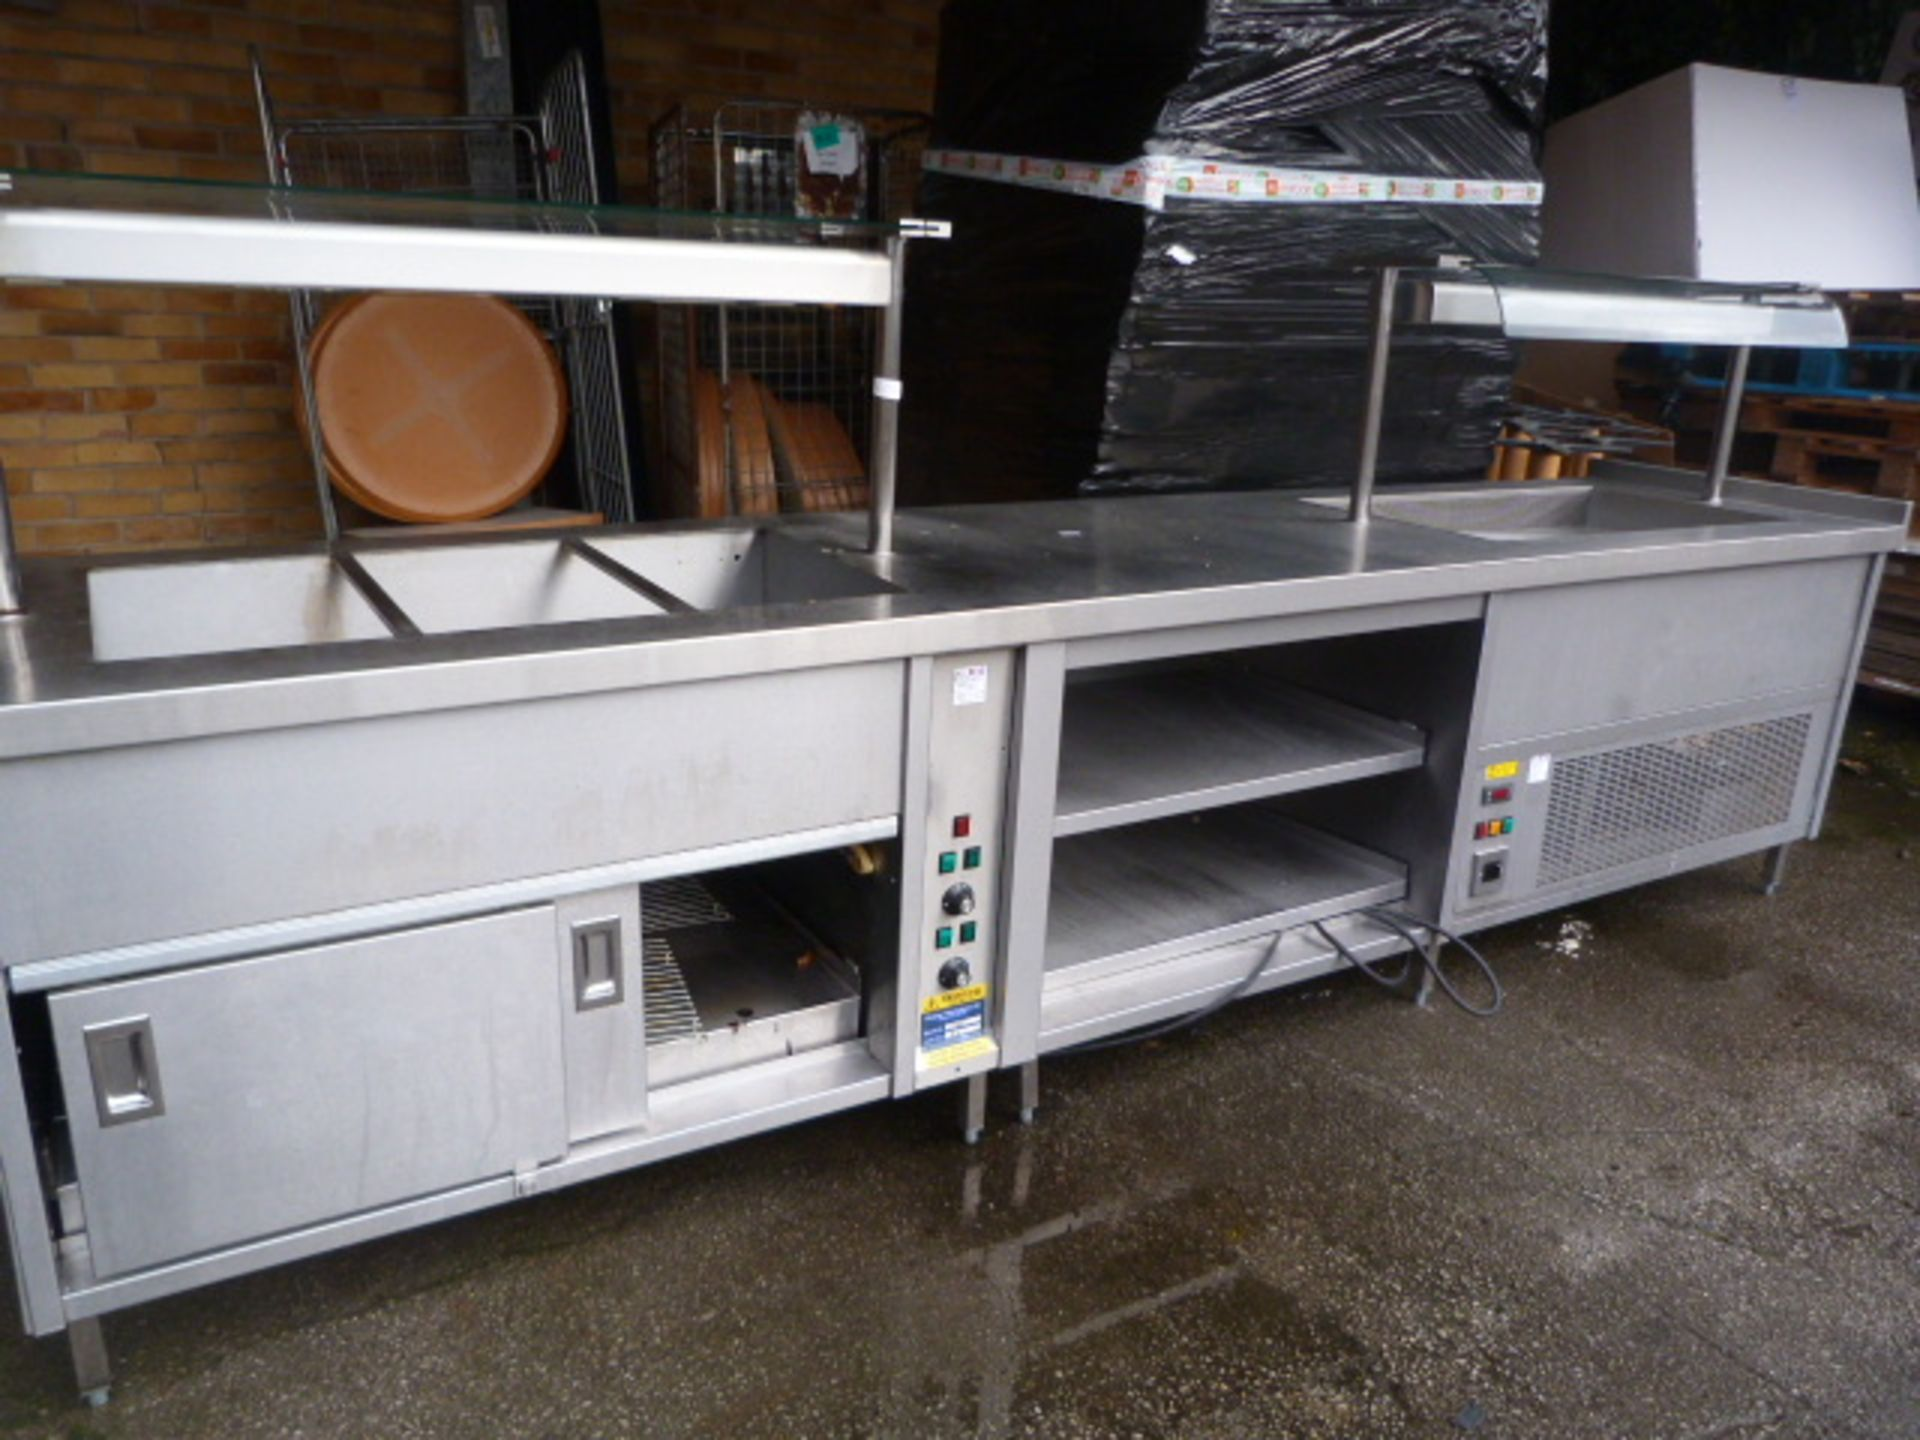 Servery Unit Comprising of Hot Cupboard, Bain Marie & Chilled Serving Unit - Full Working when Remov